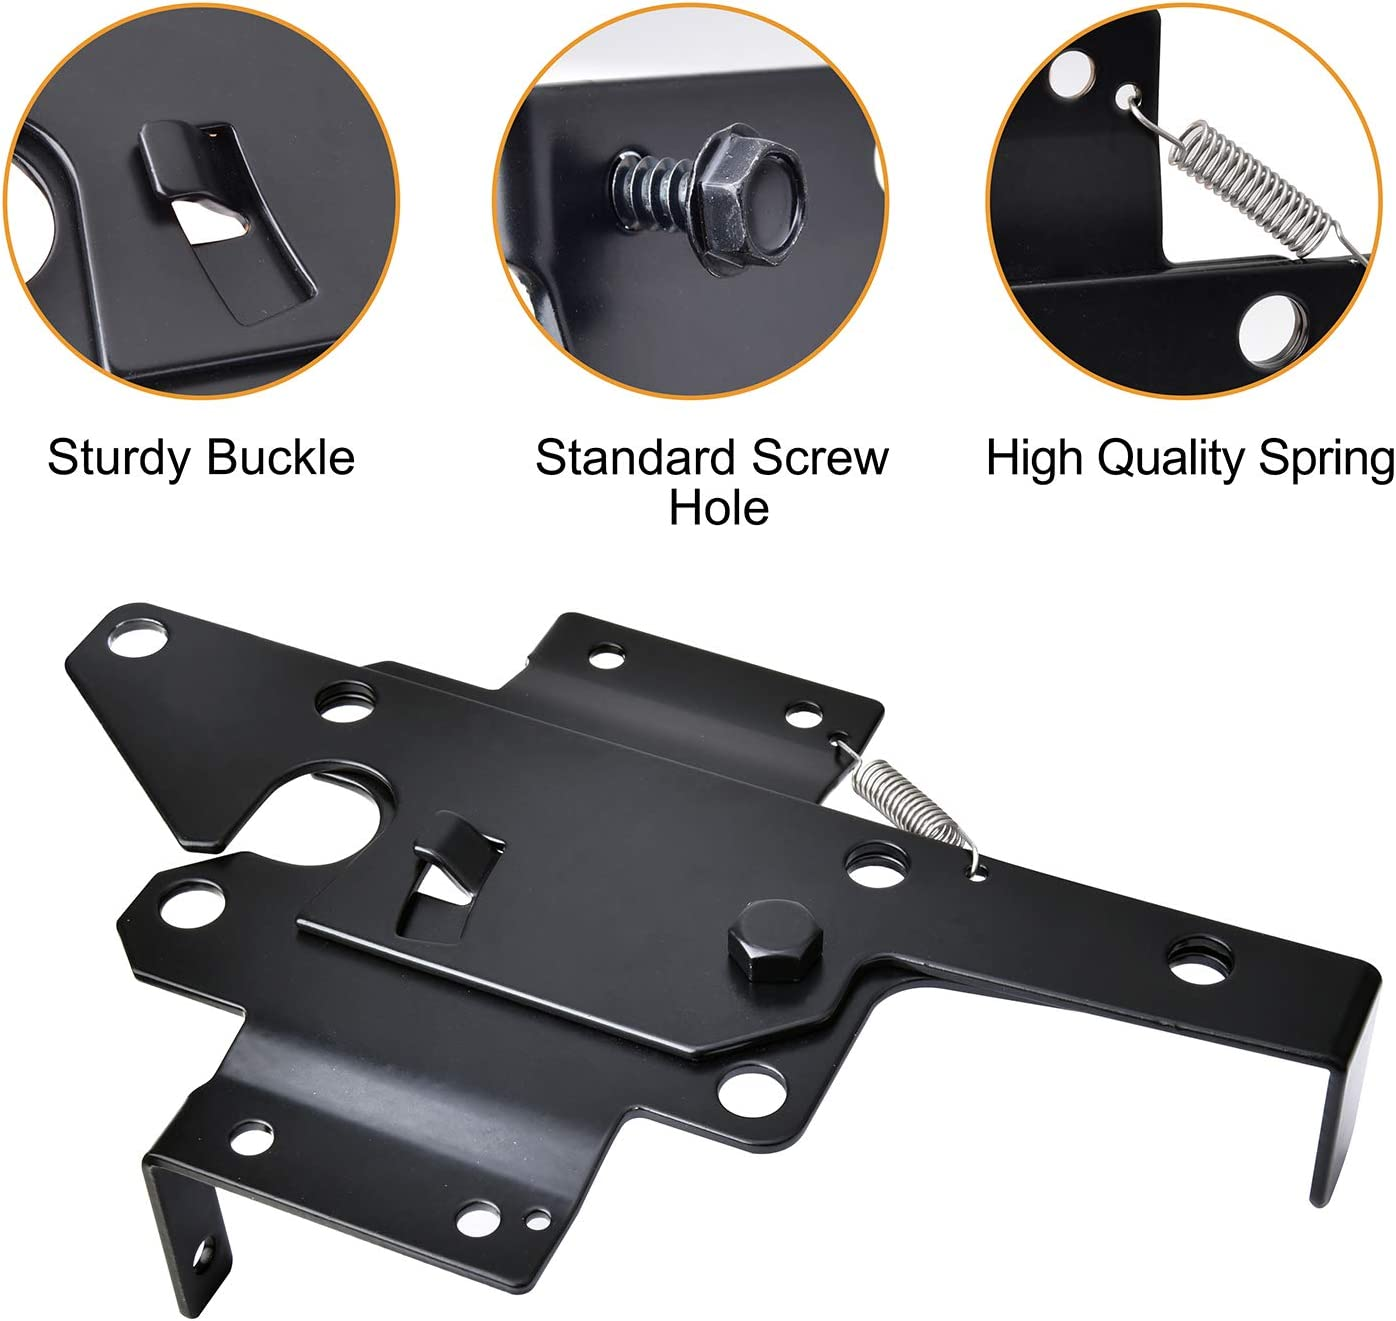 Black Finish Steel Gate Latch to Secure Pool and Yard VIGRUE/Self-Locking Gate Latch Heavy Duty Automatic Gate Latch with Fasteners Included and Optional Mounting Plate